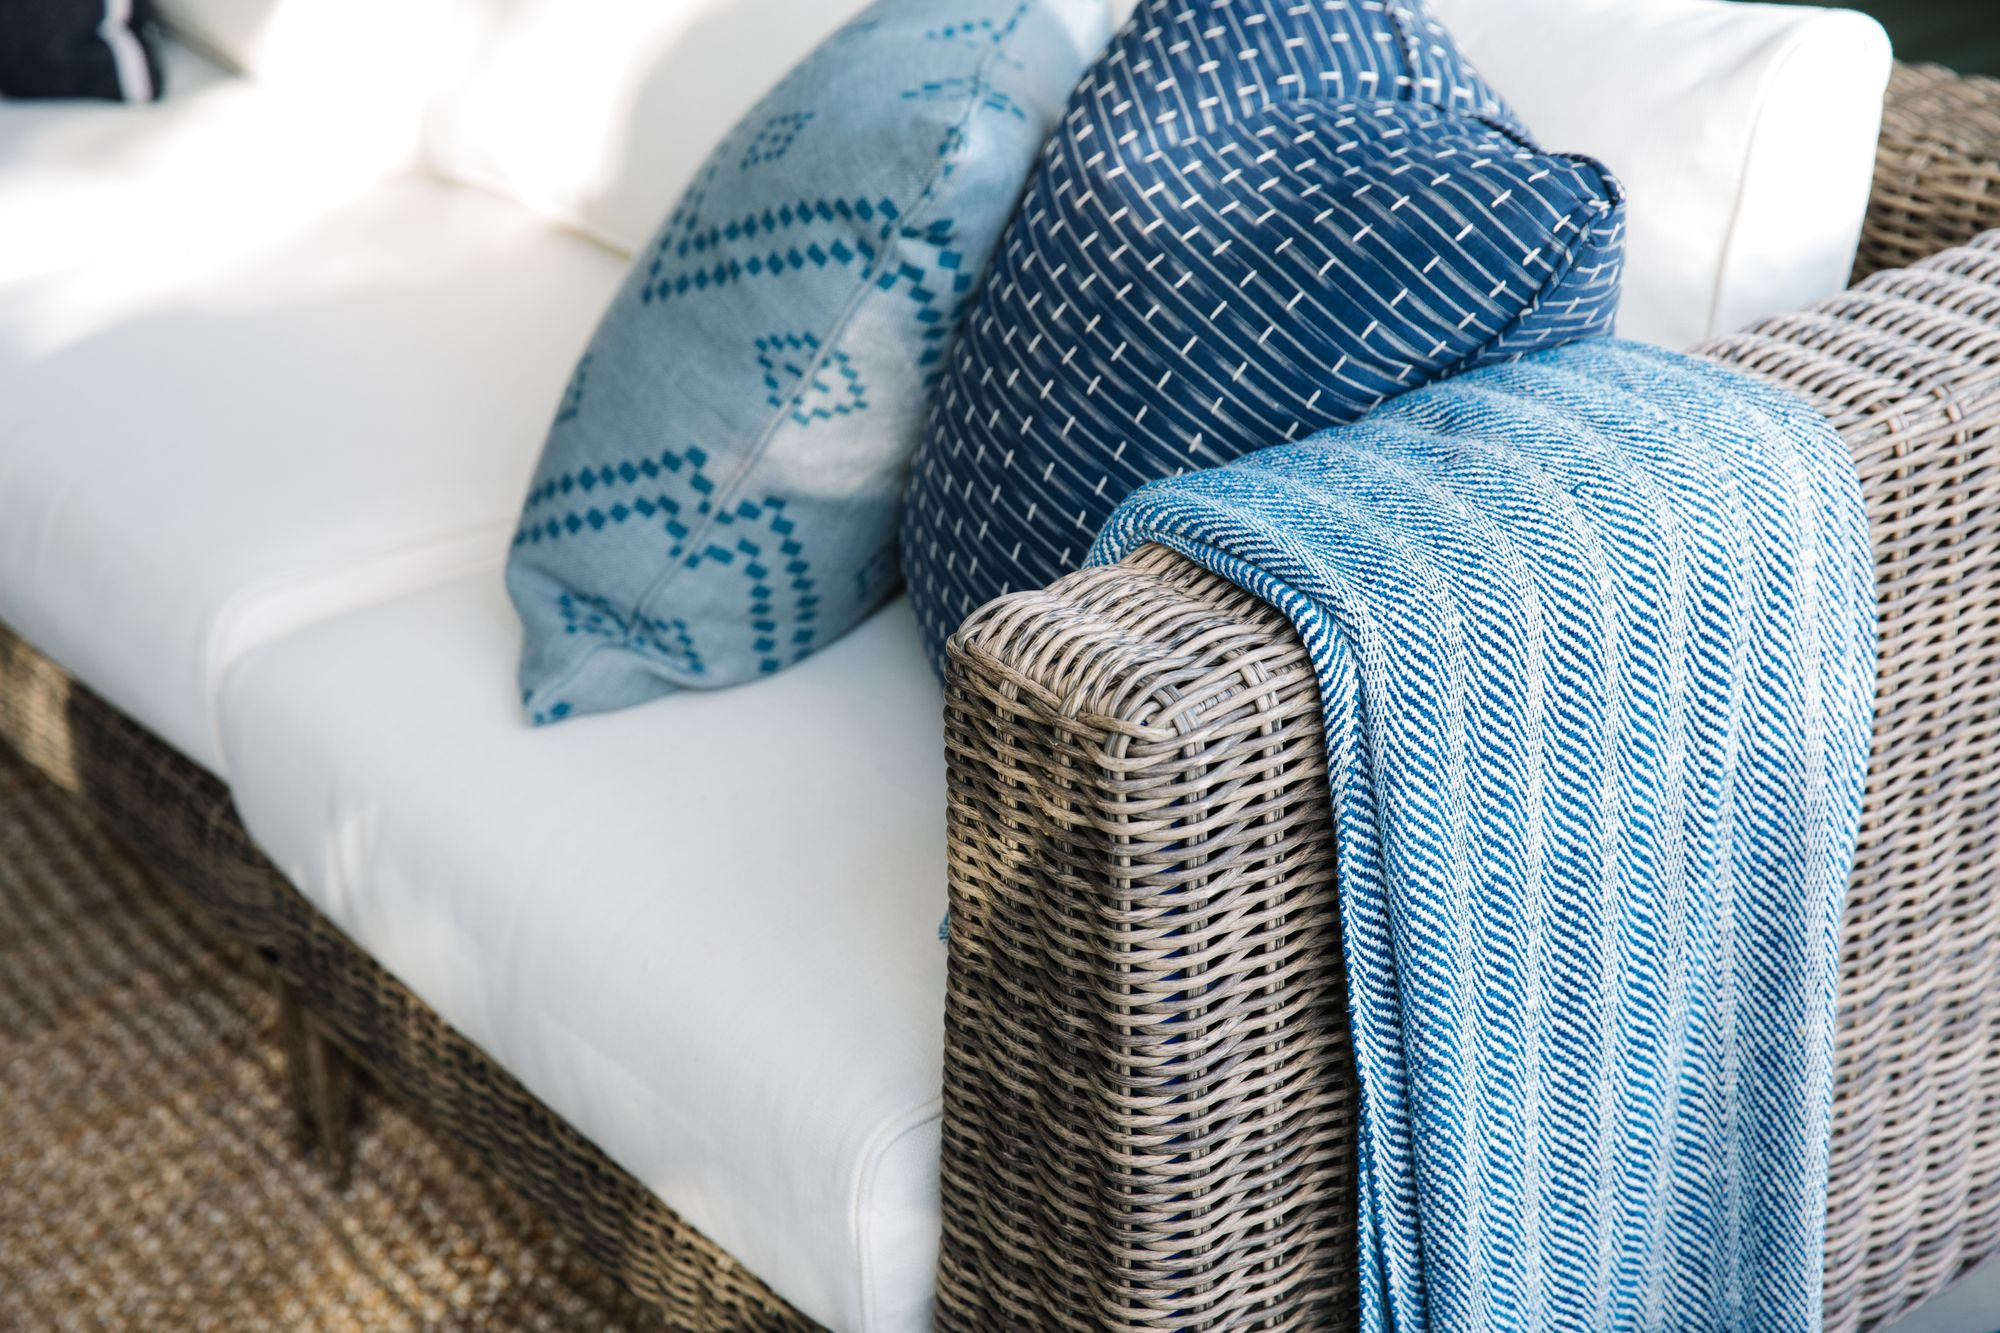 Pillows and throw blanket on patio furniture